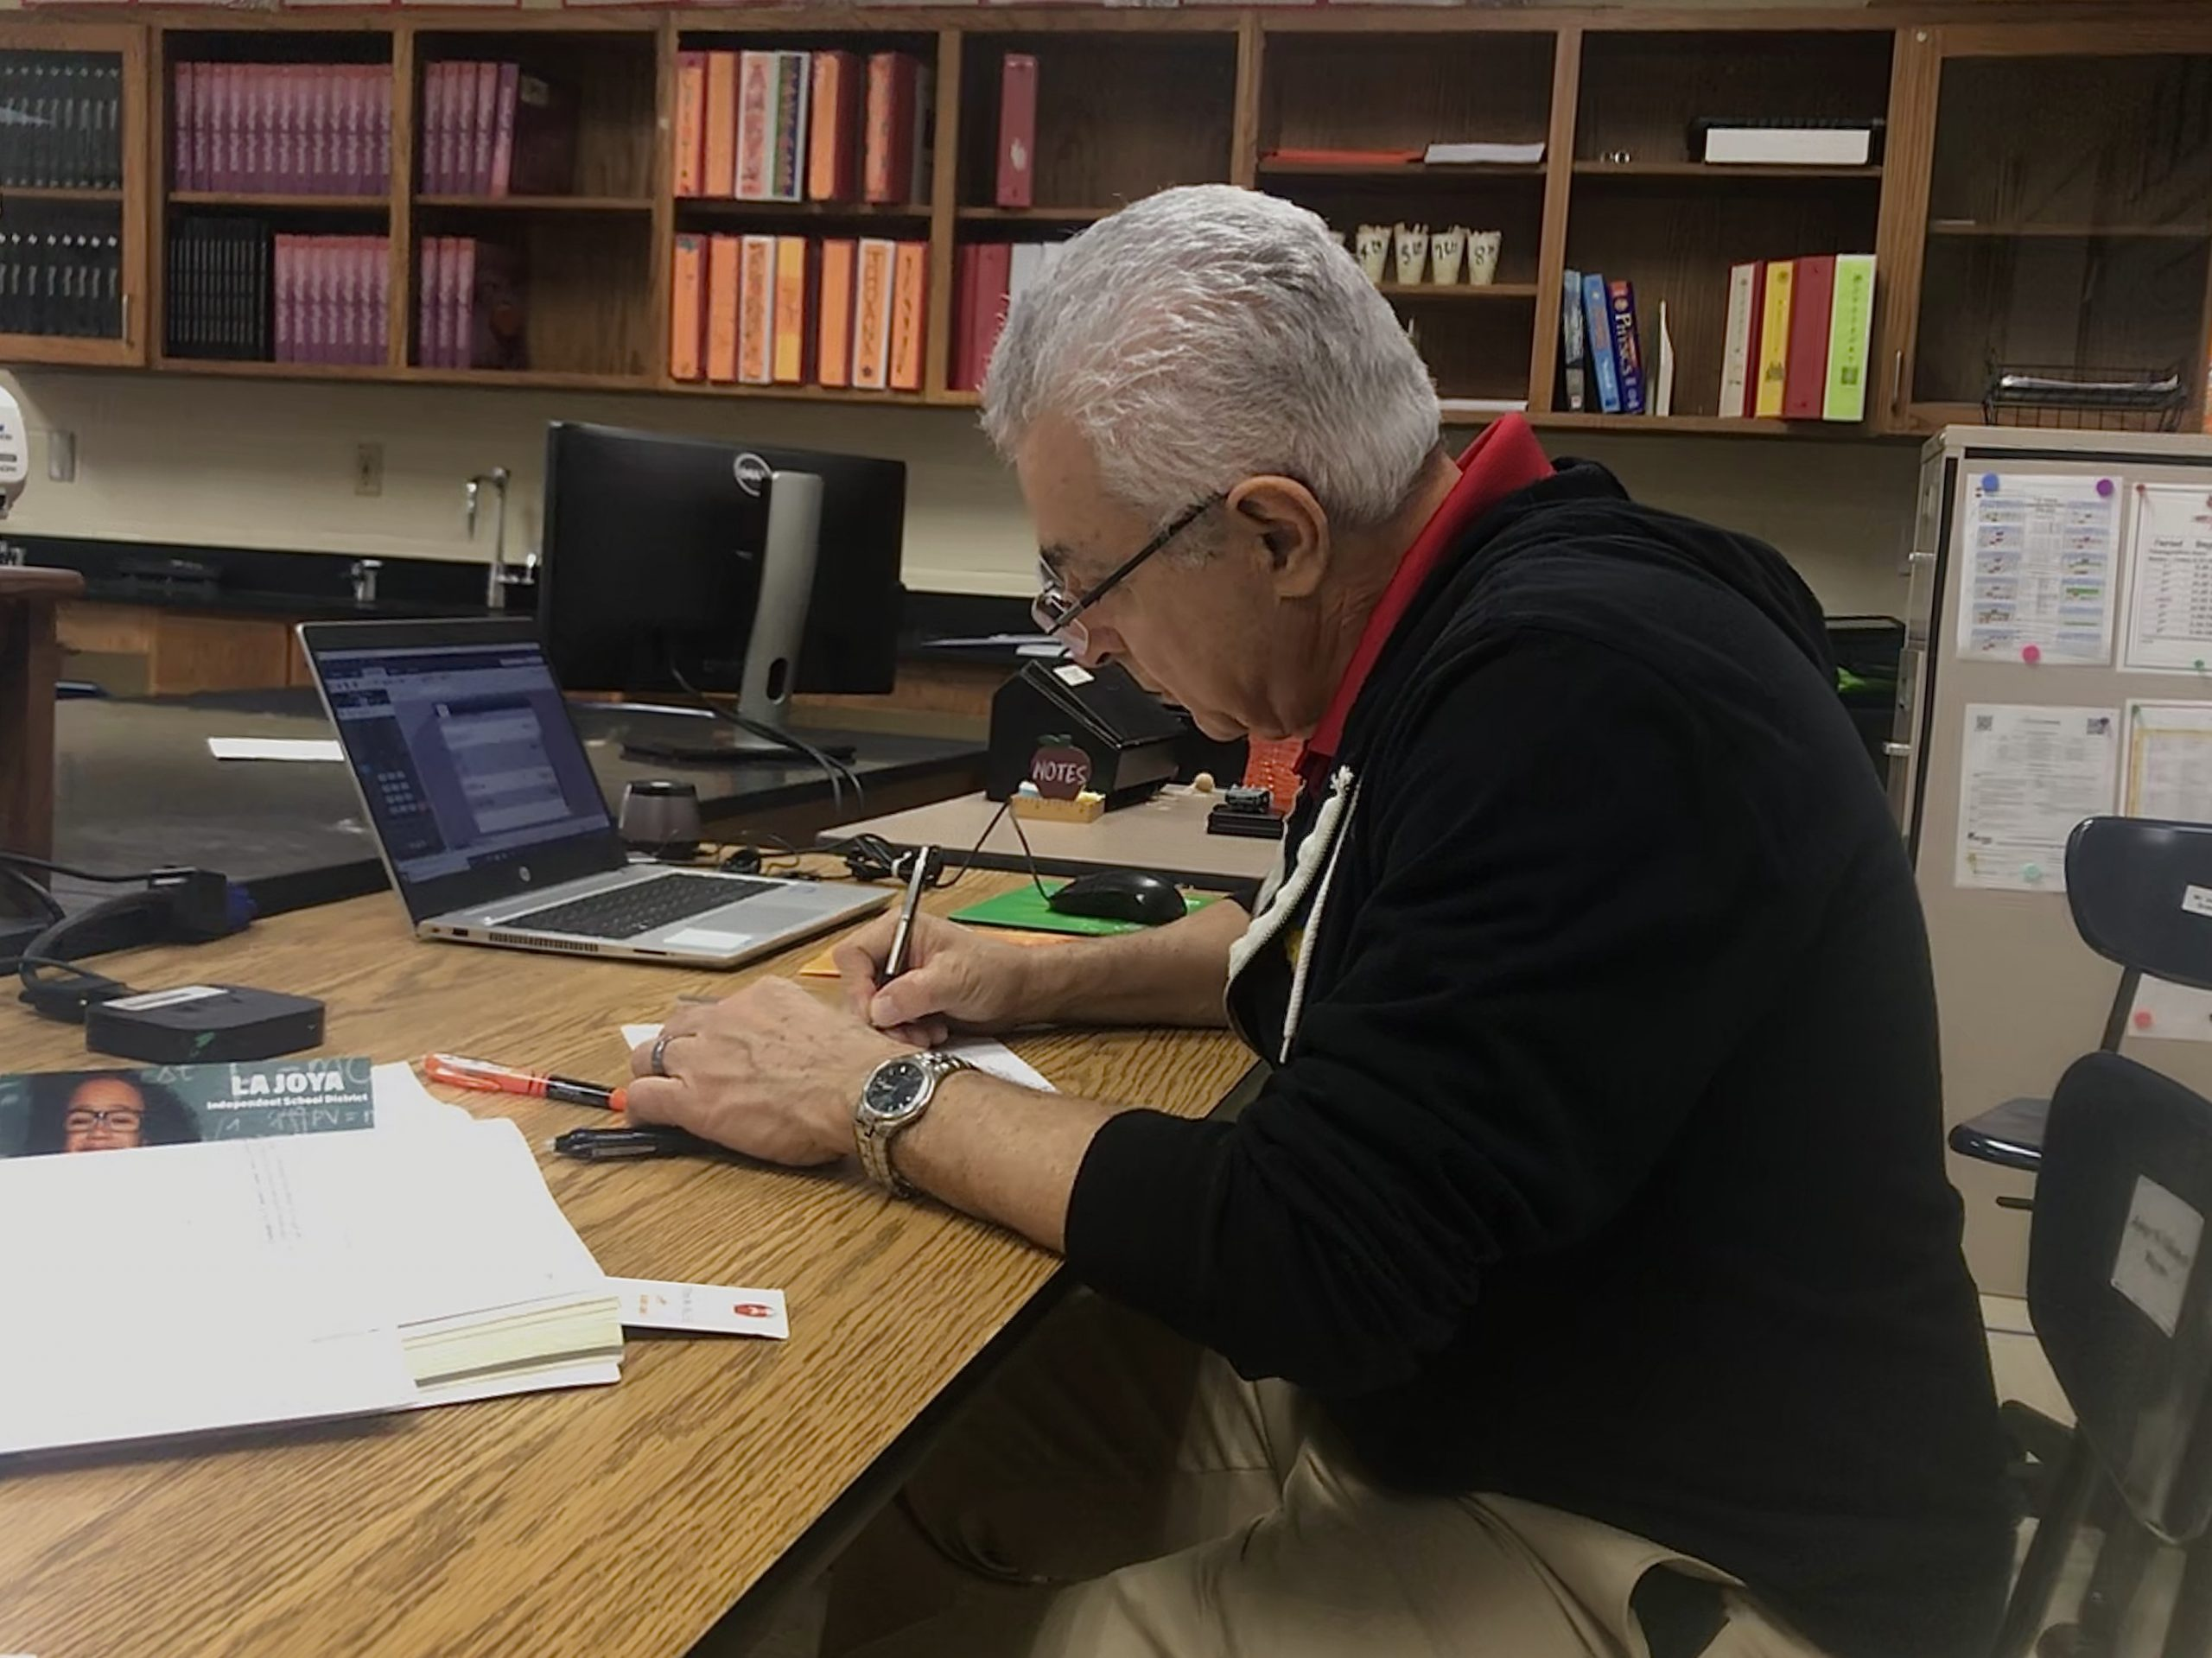 Teacher Villarreal works on his lesson plan for students.